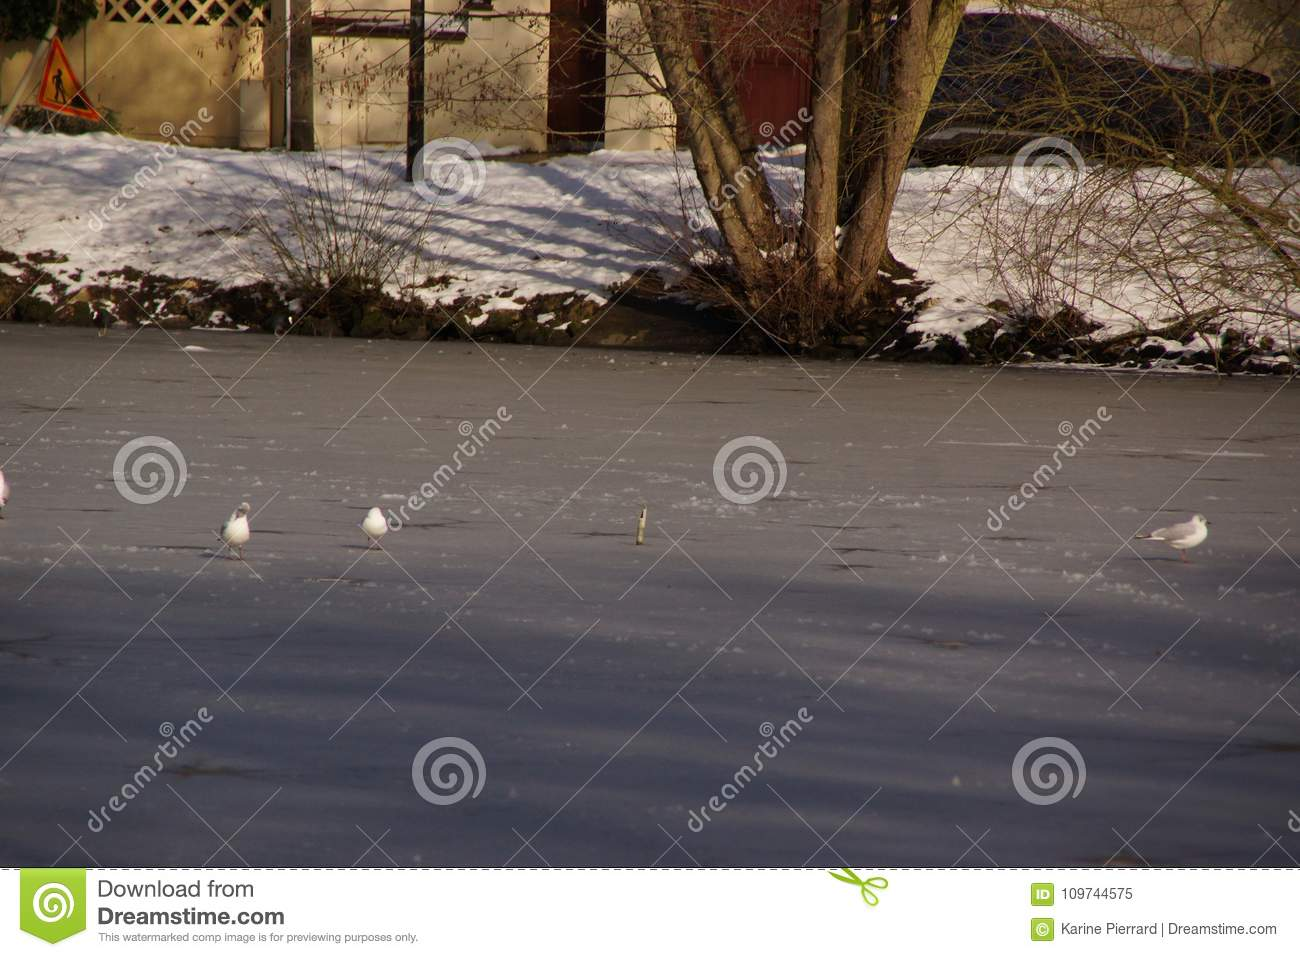 White birds - Pond of the Mute in the city of Elancourt in France